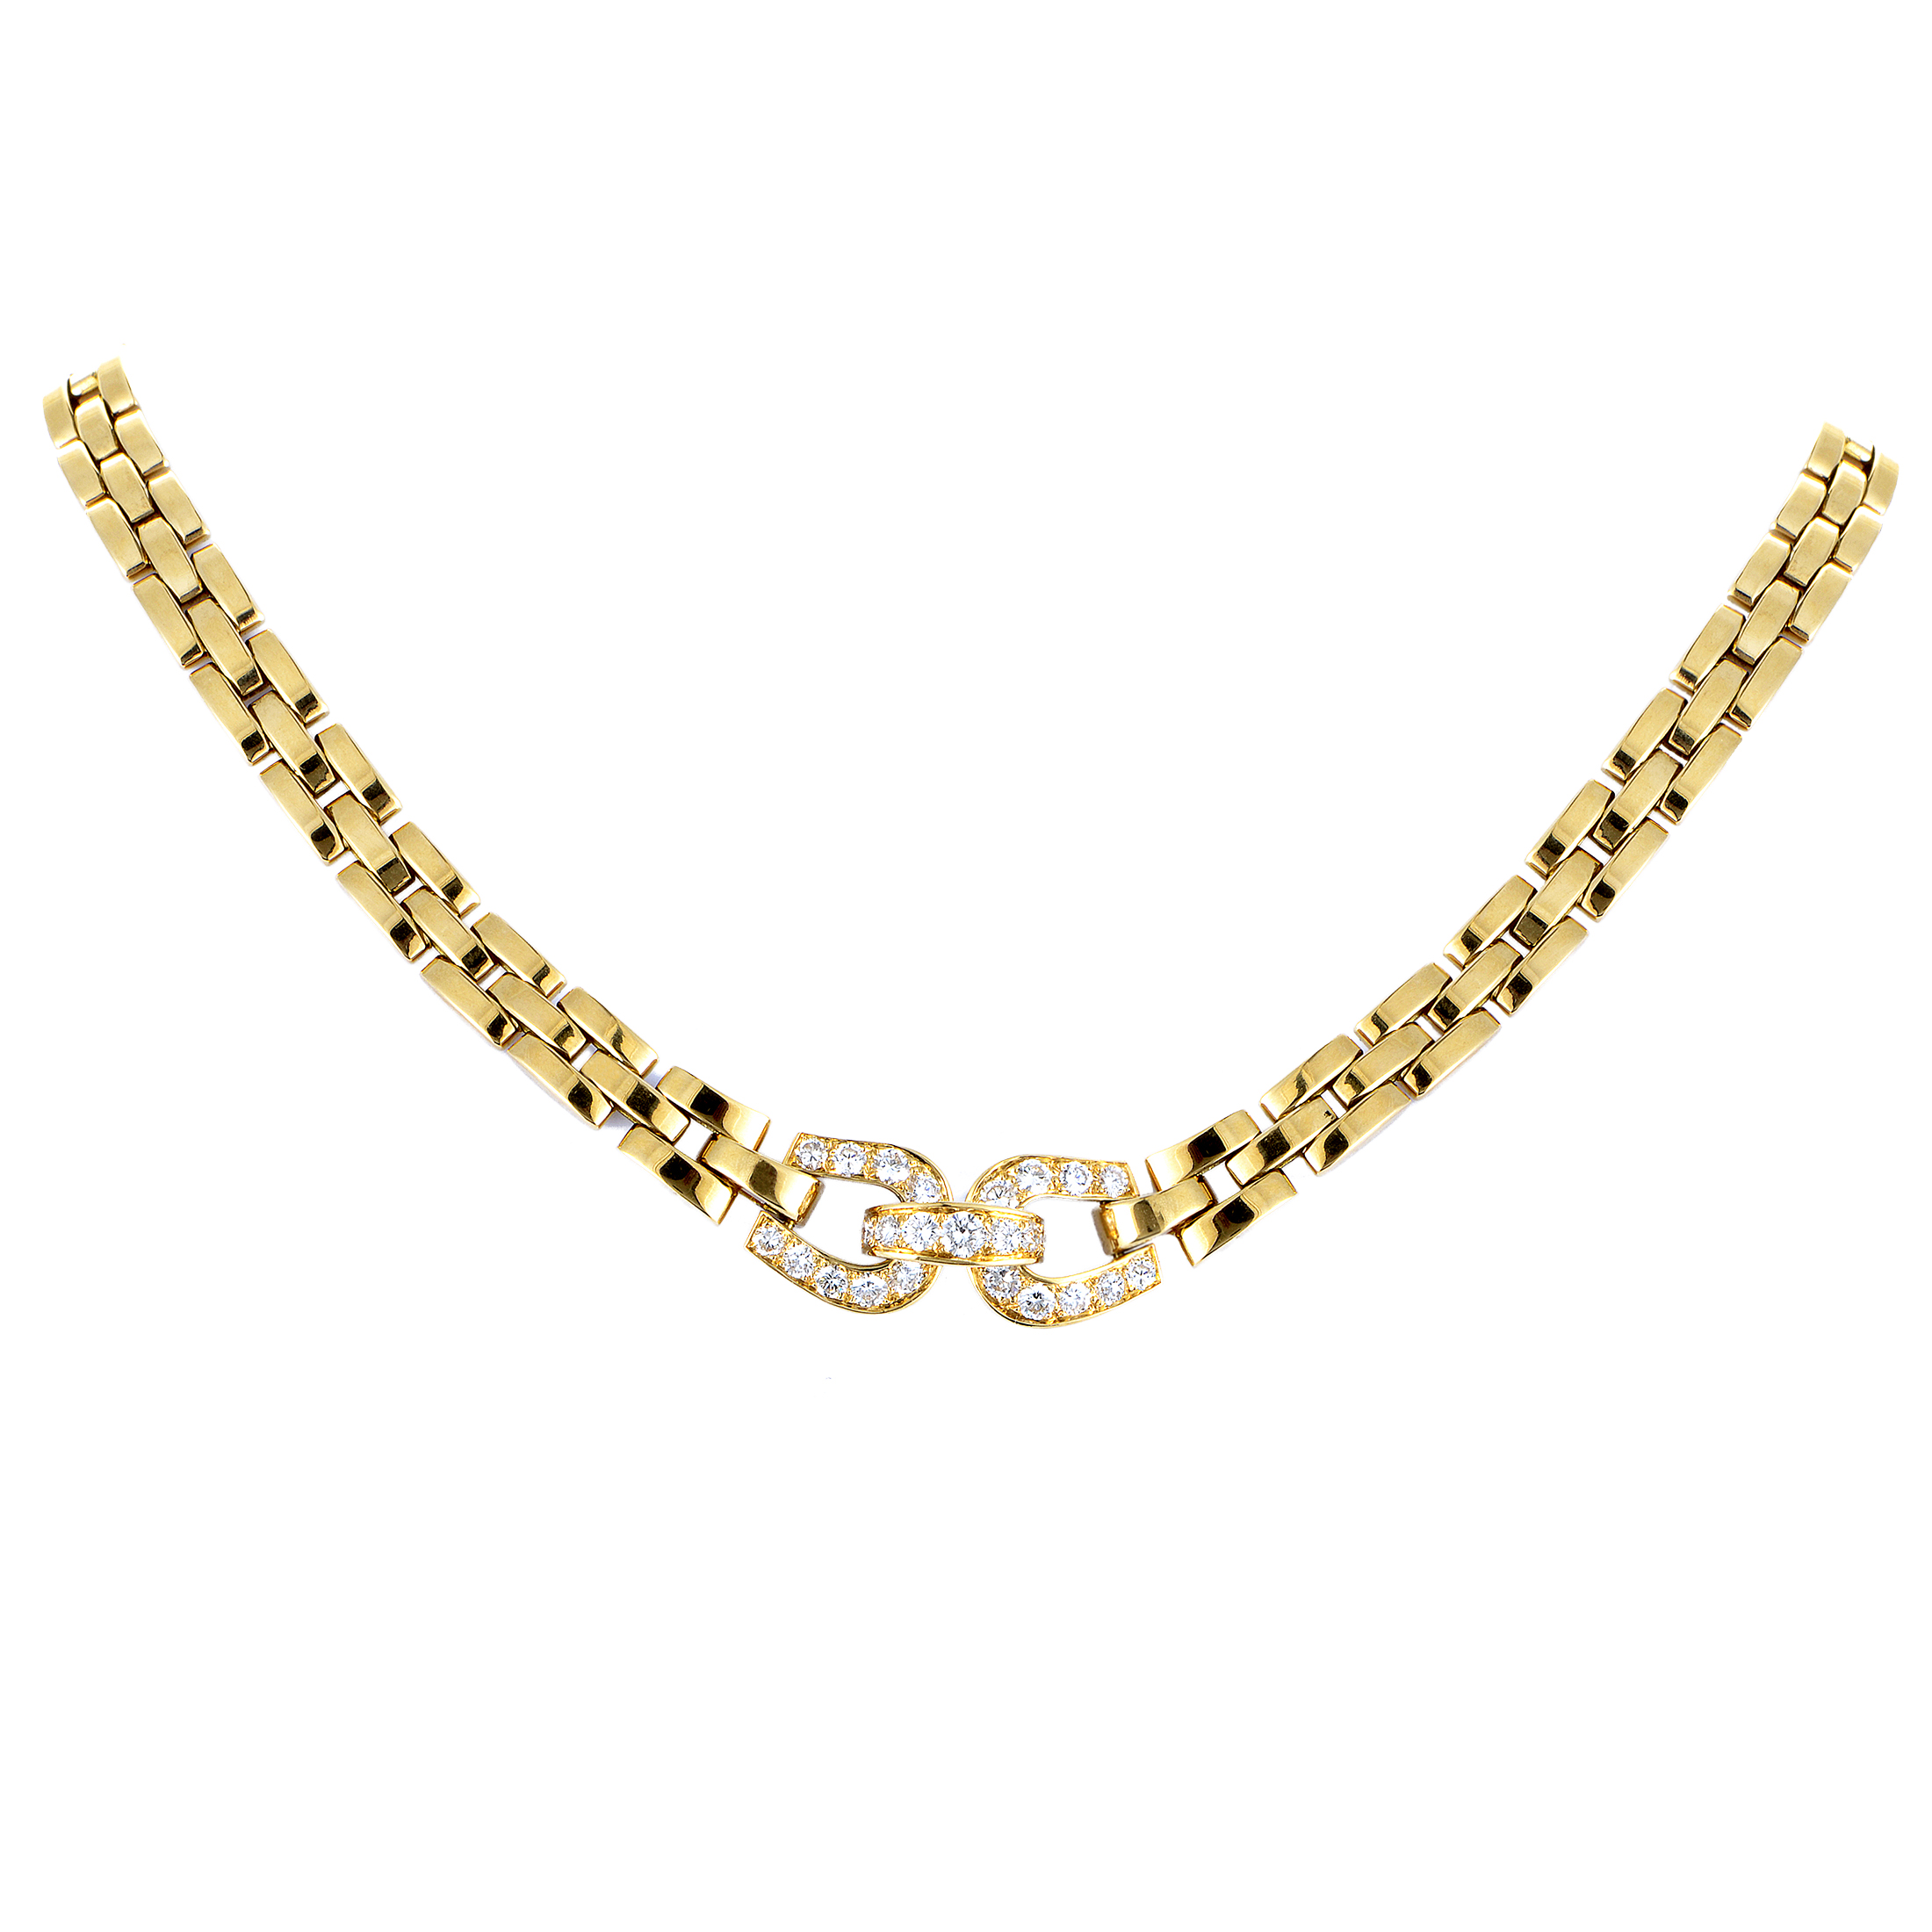 Cartier Maillon Panthere Women's 18K Yellow Gold Diamond Collar Necklace